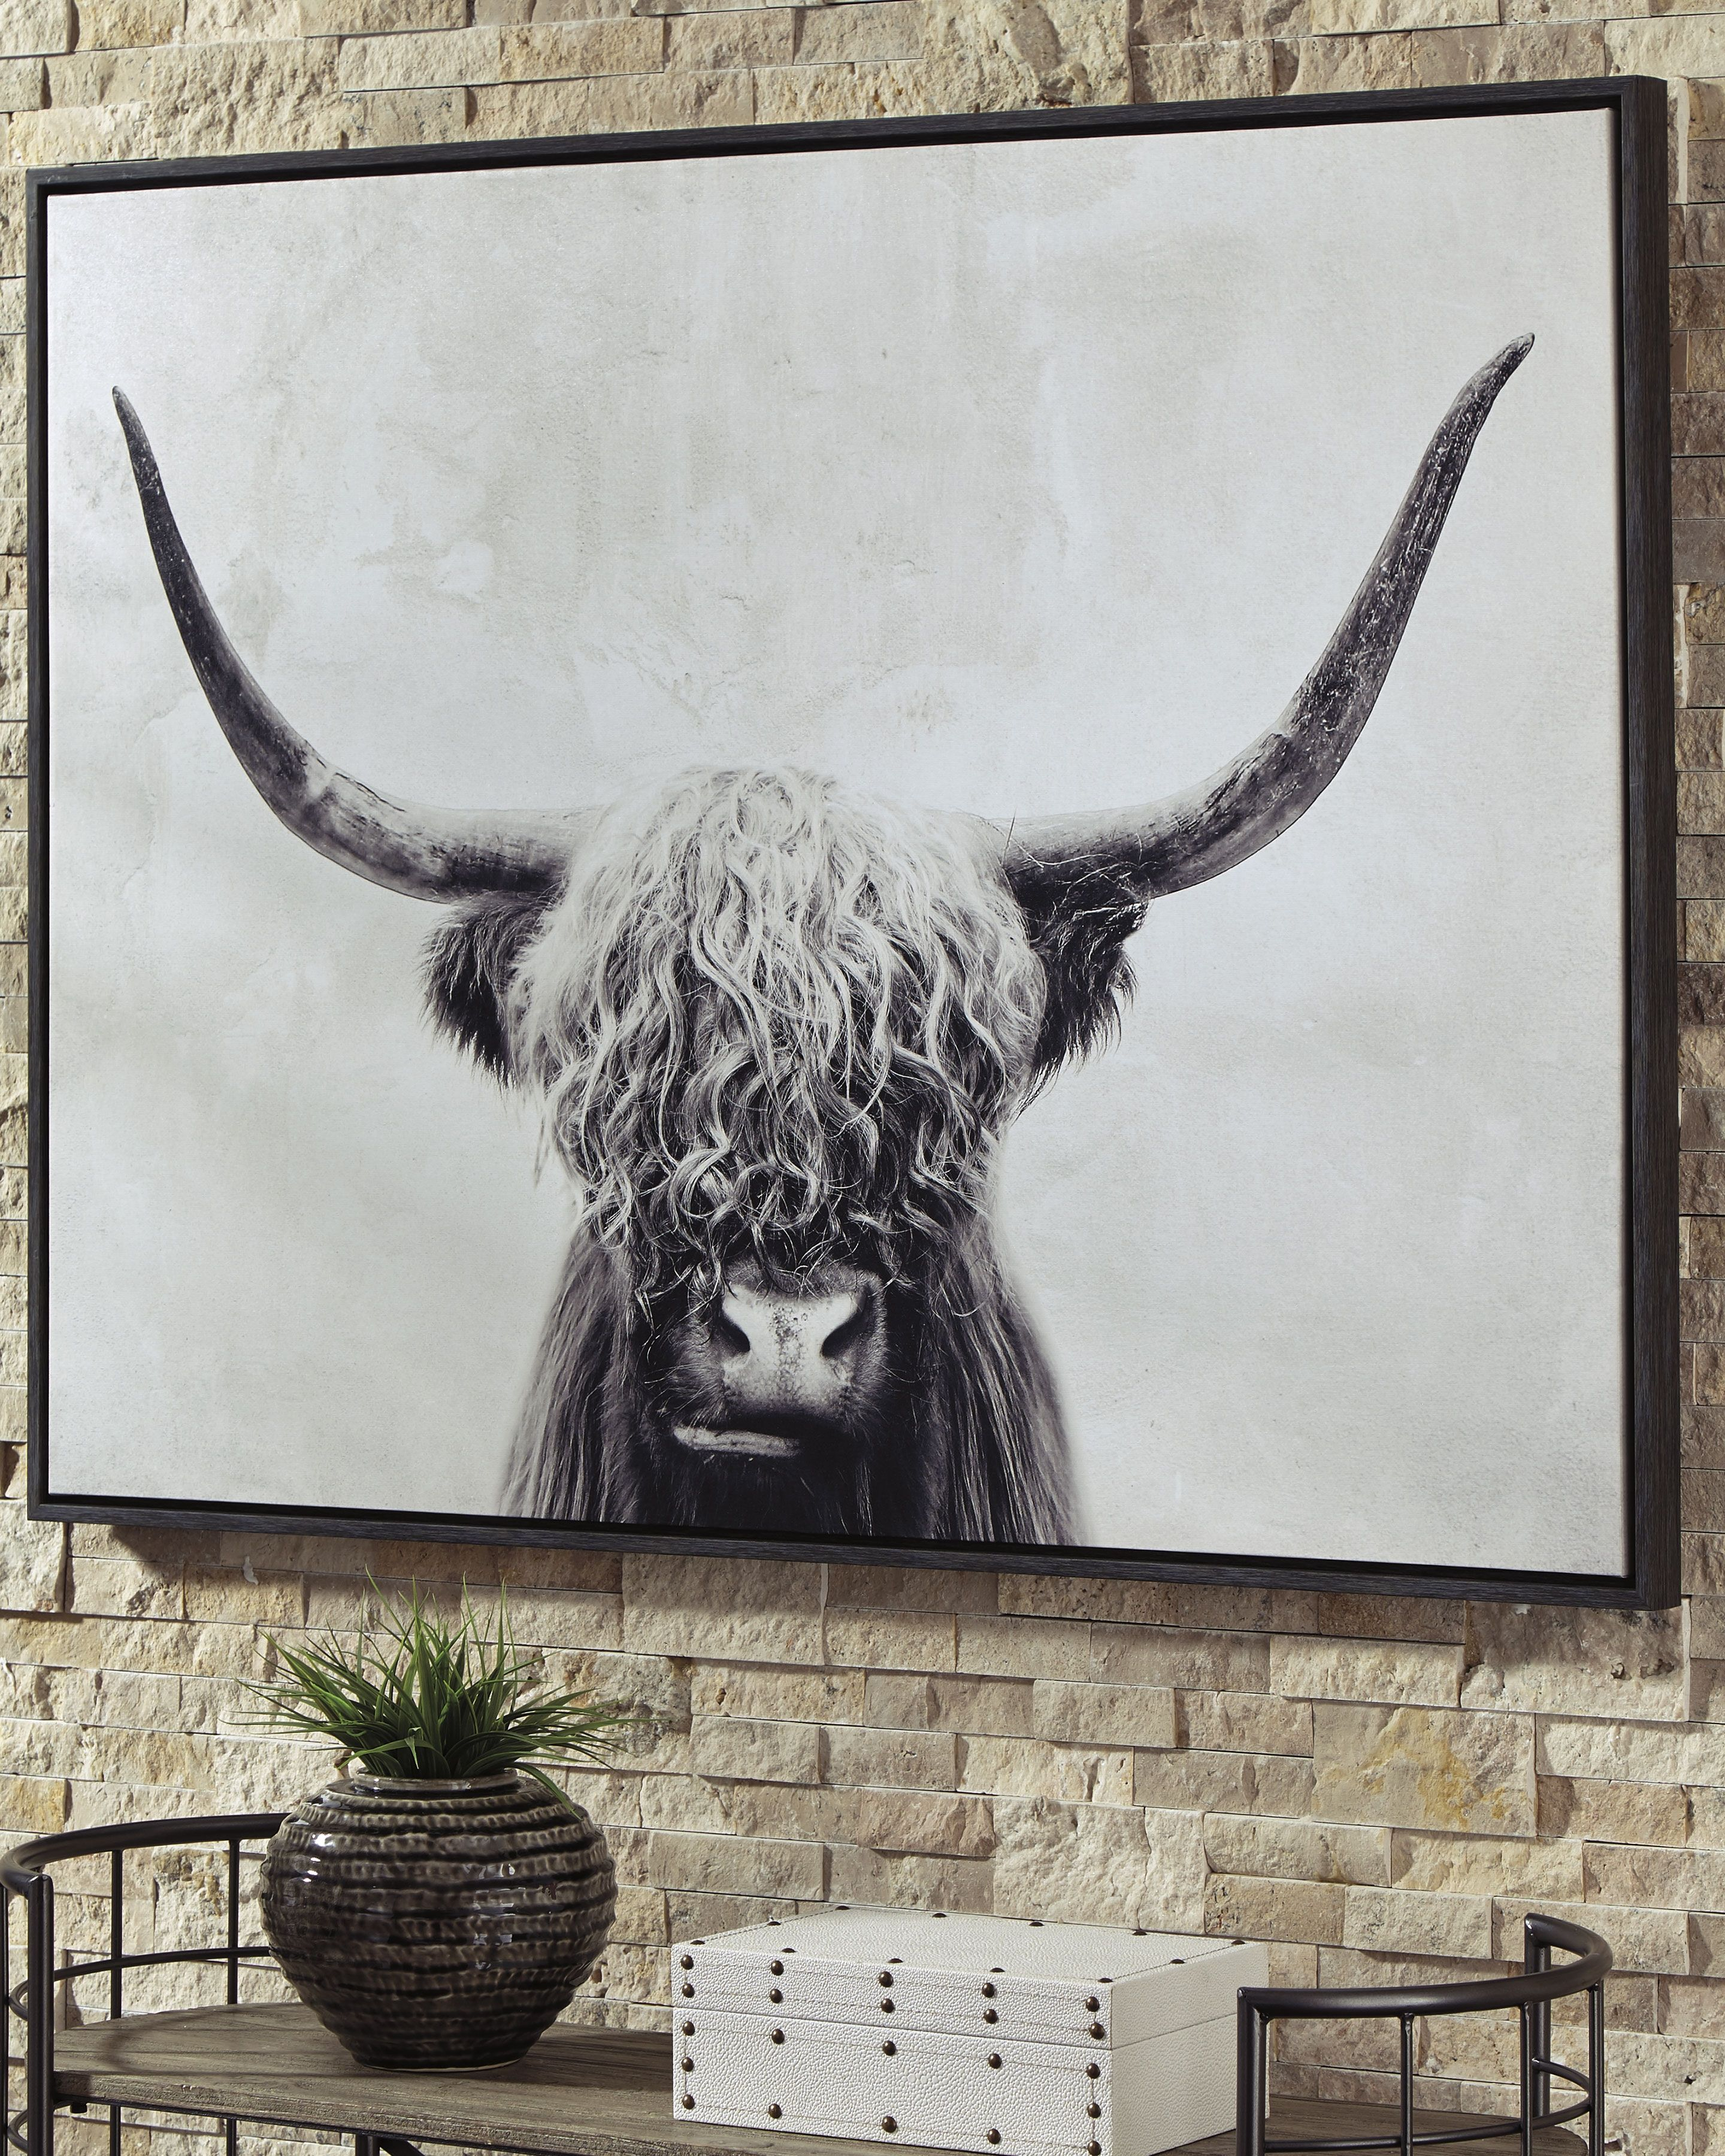 Pancho Wall Art Cow Wall Art Black And White Wall Art White Wall Art